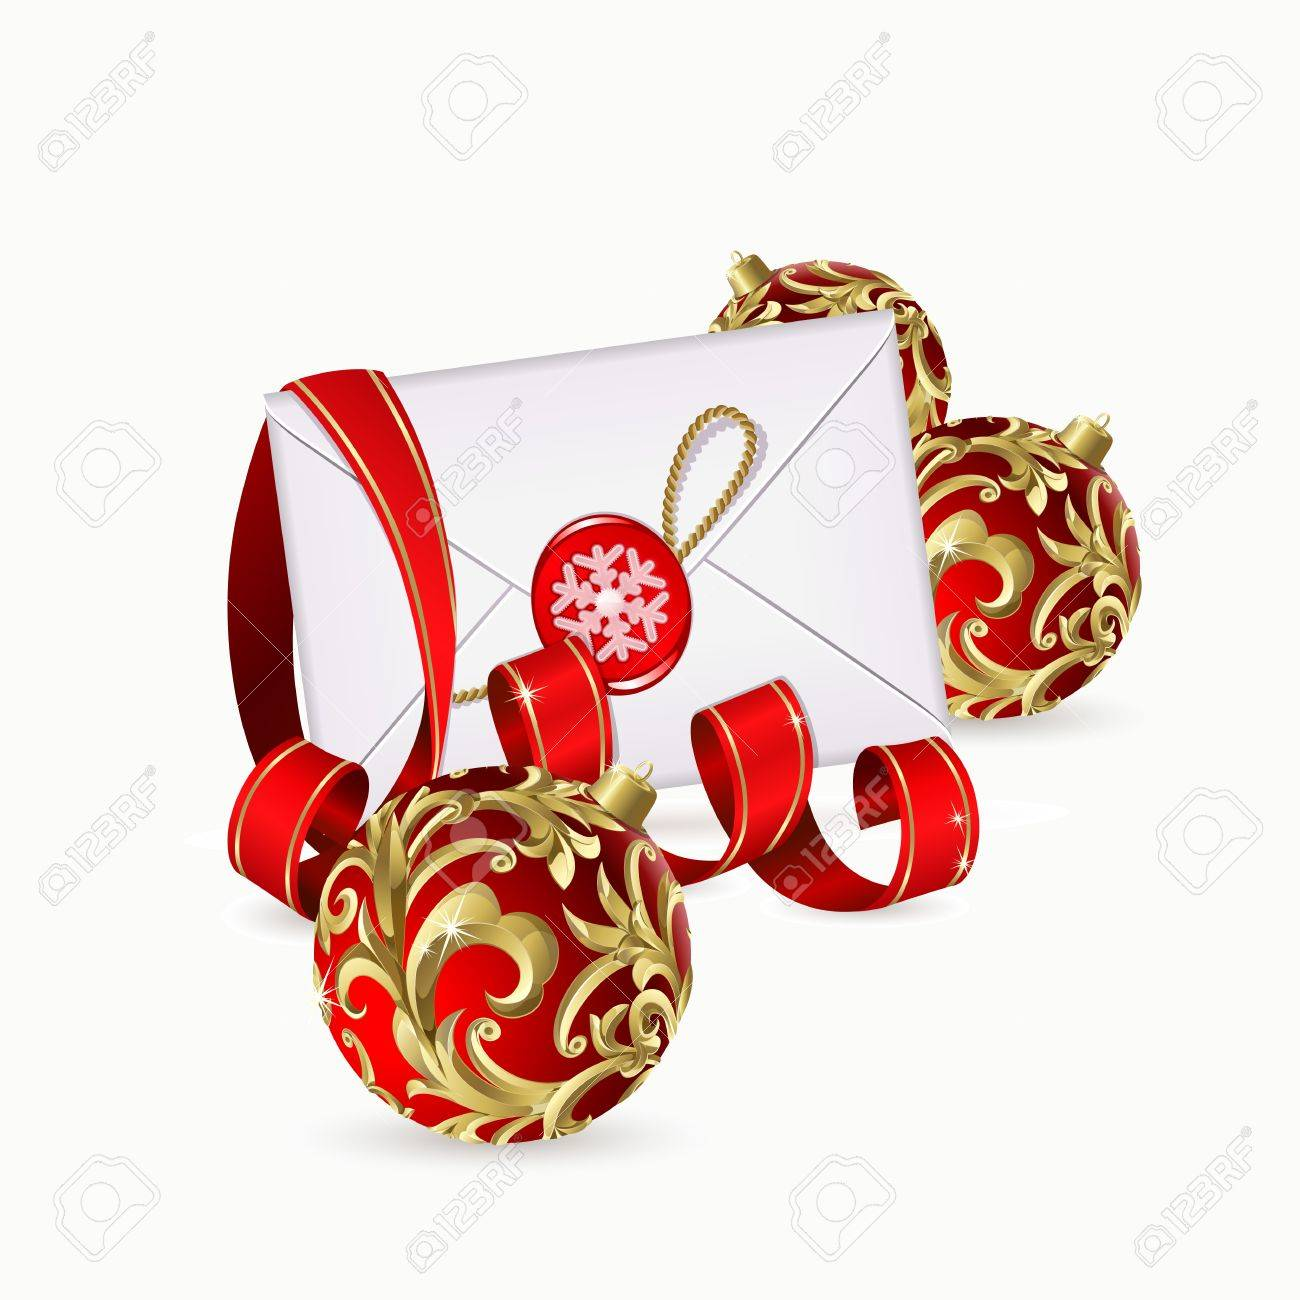 Christmas Background With Red Balls, Ribbon And Envelope Royalty ...